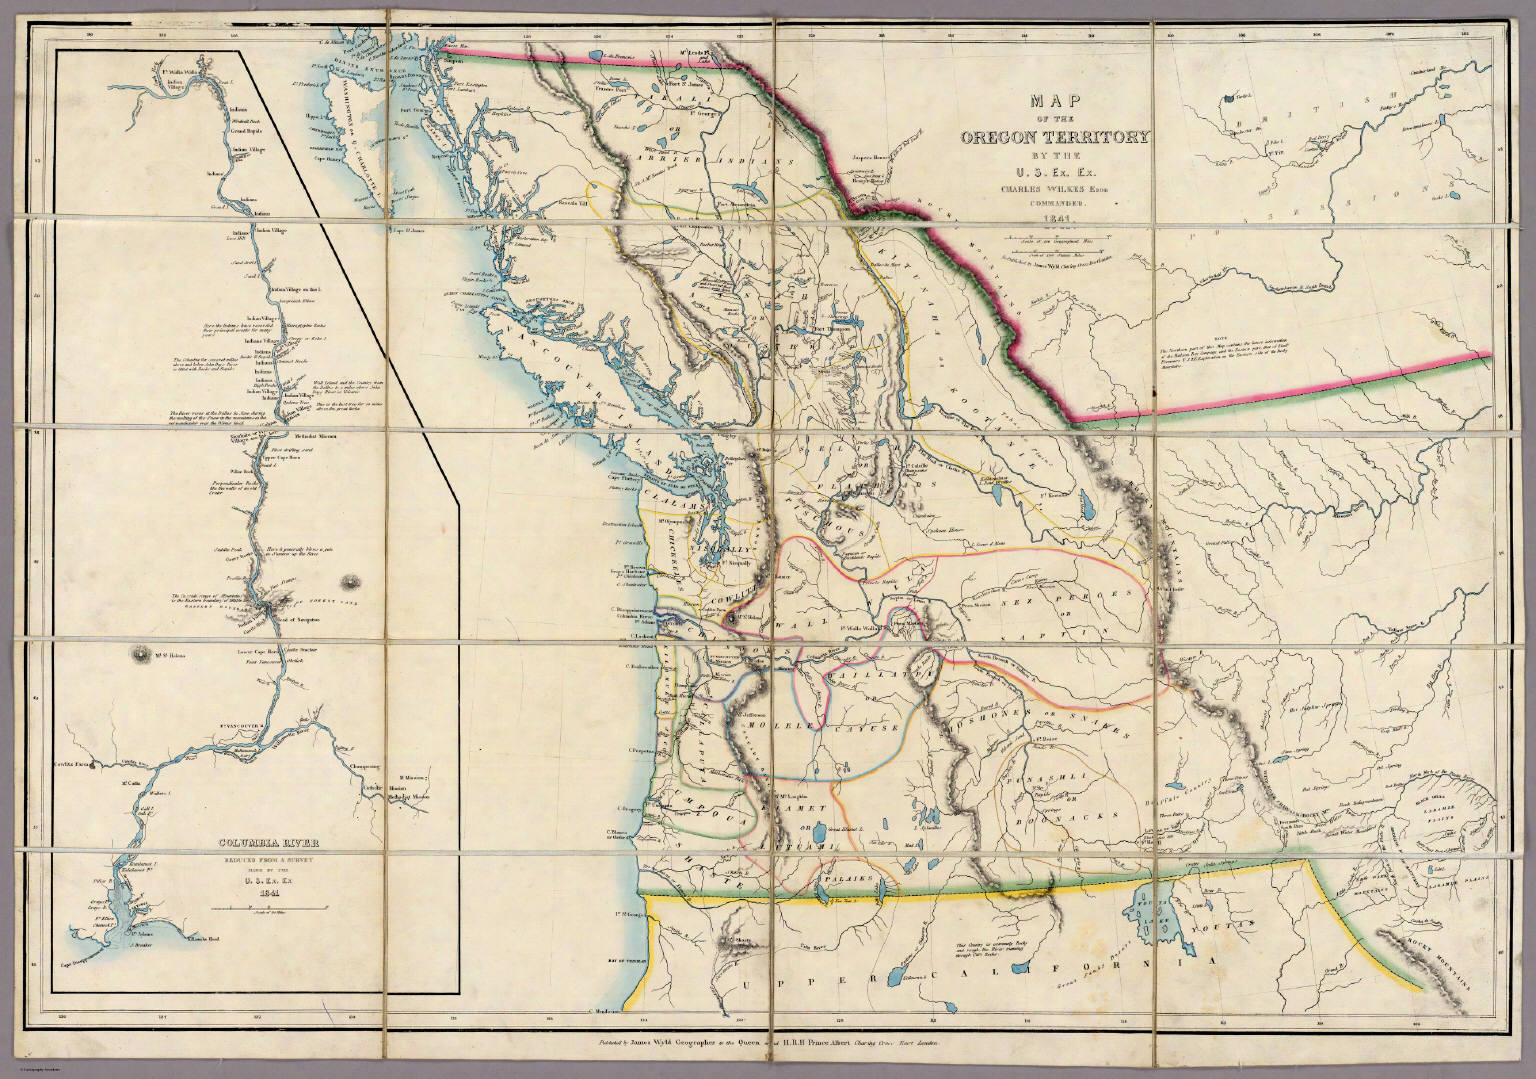 Maps related to george washington bush map of oregon territory by charles wilkes 1841 maps of united states publicscrutiny Image collections